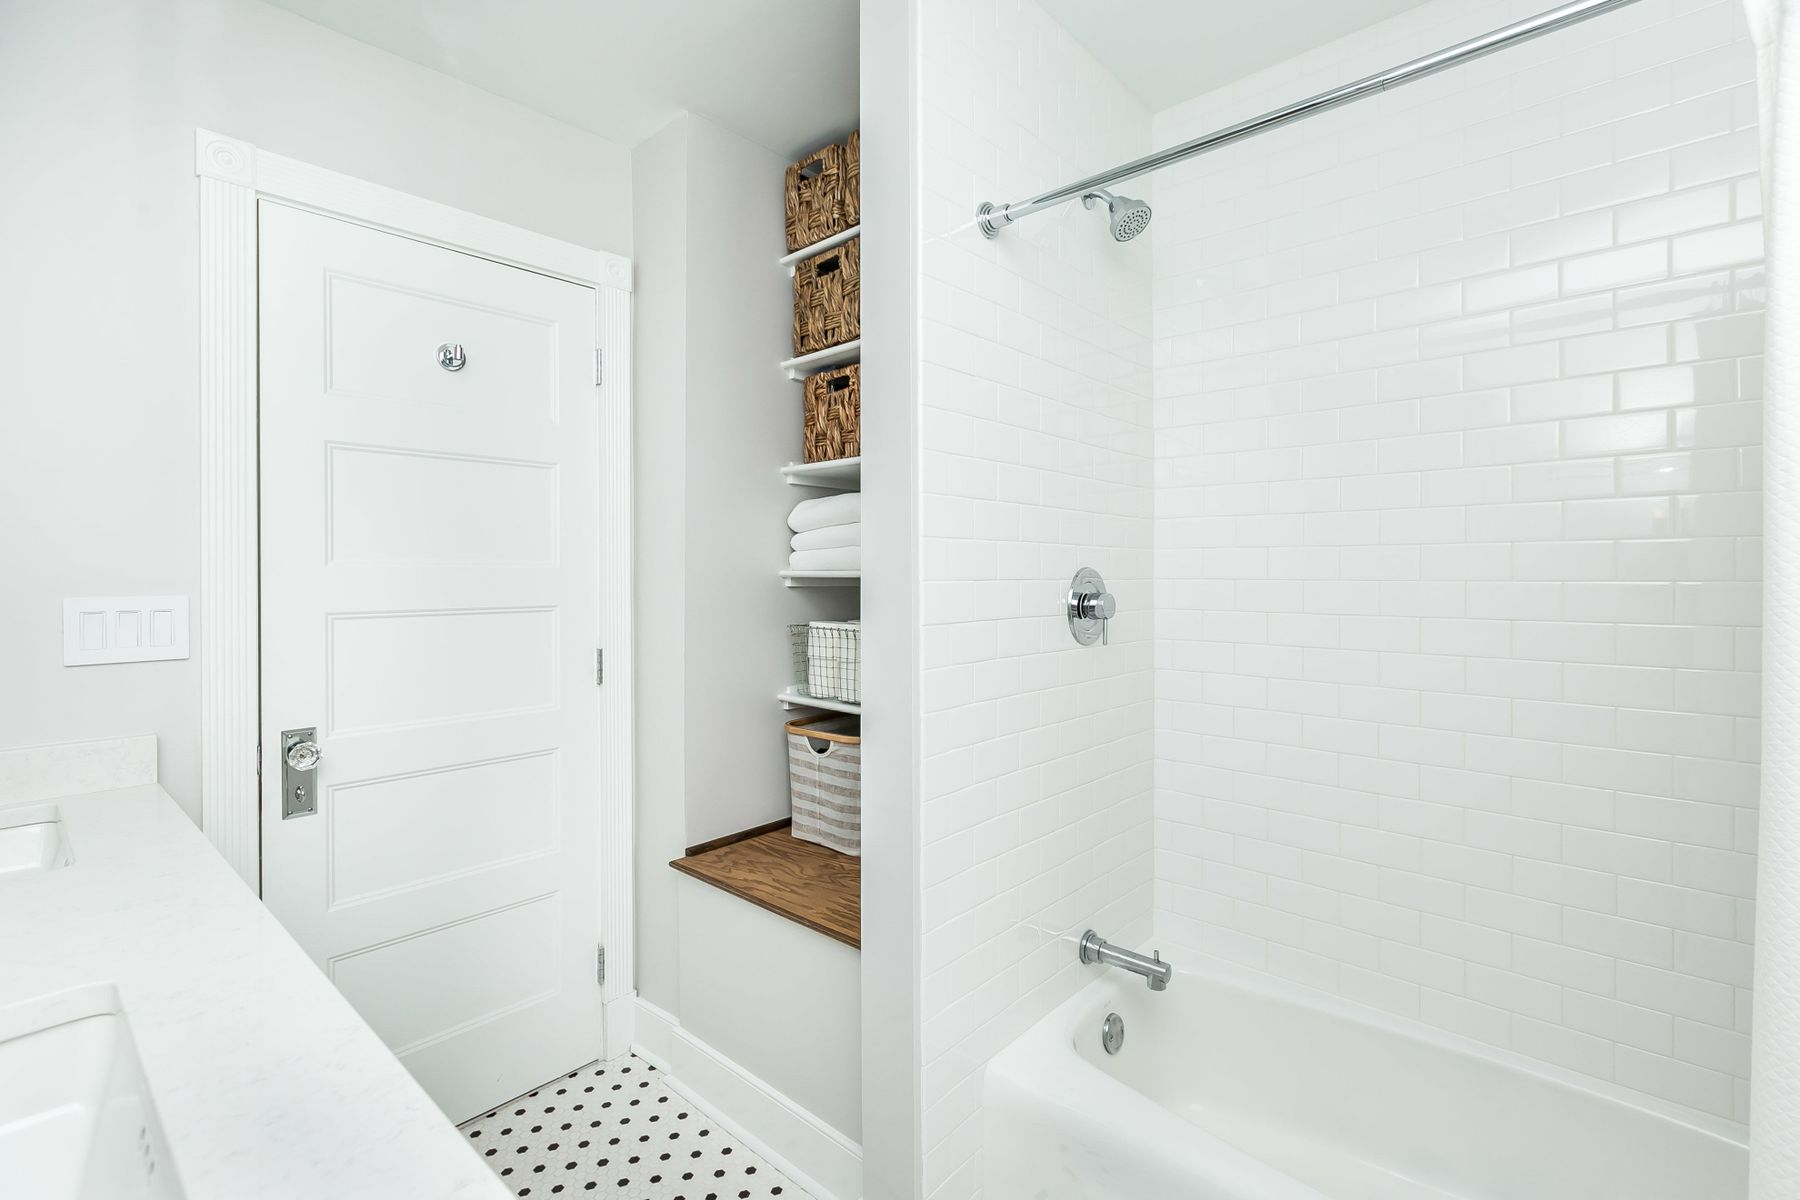 View of new shower in home remodel